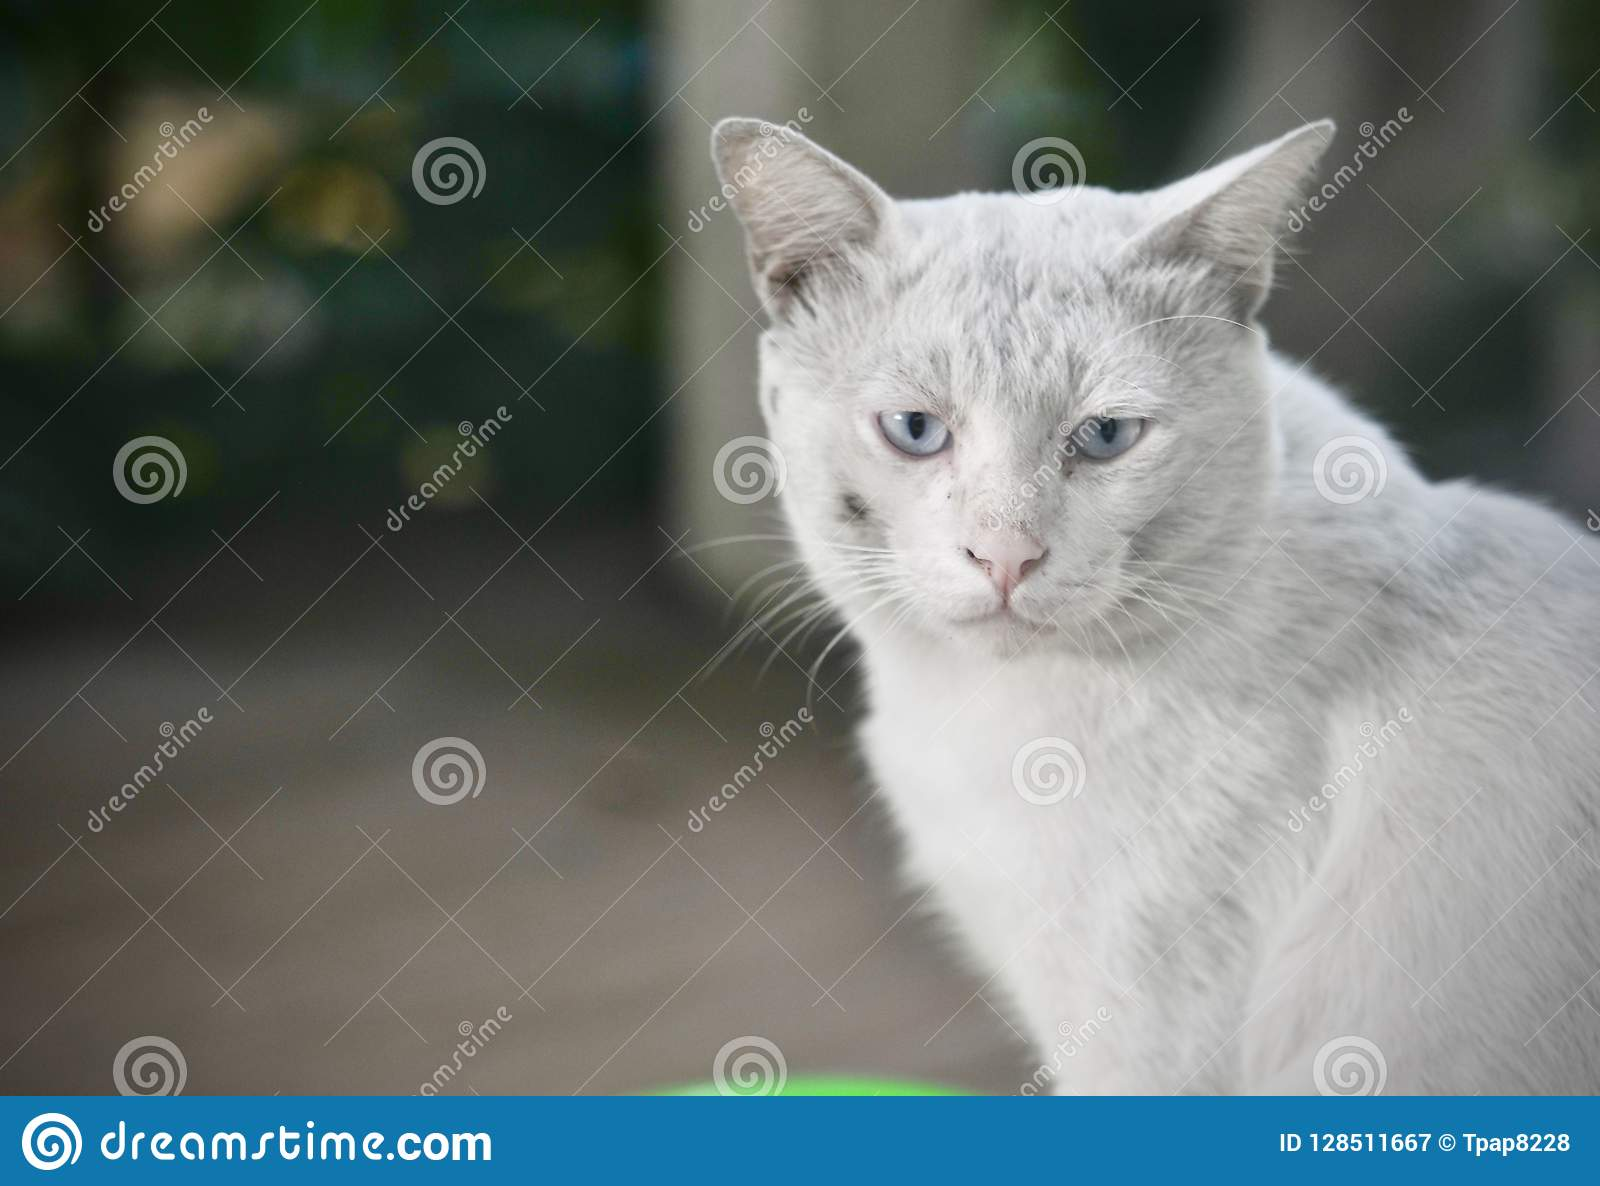 Siamese Cat Is The Thai Domestic Cat Very Cute And Smart Pet In